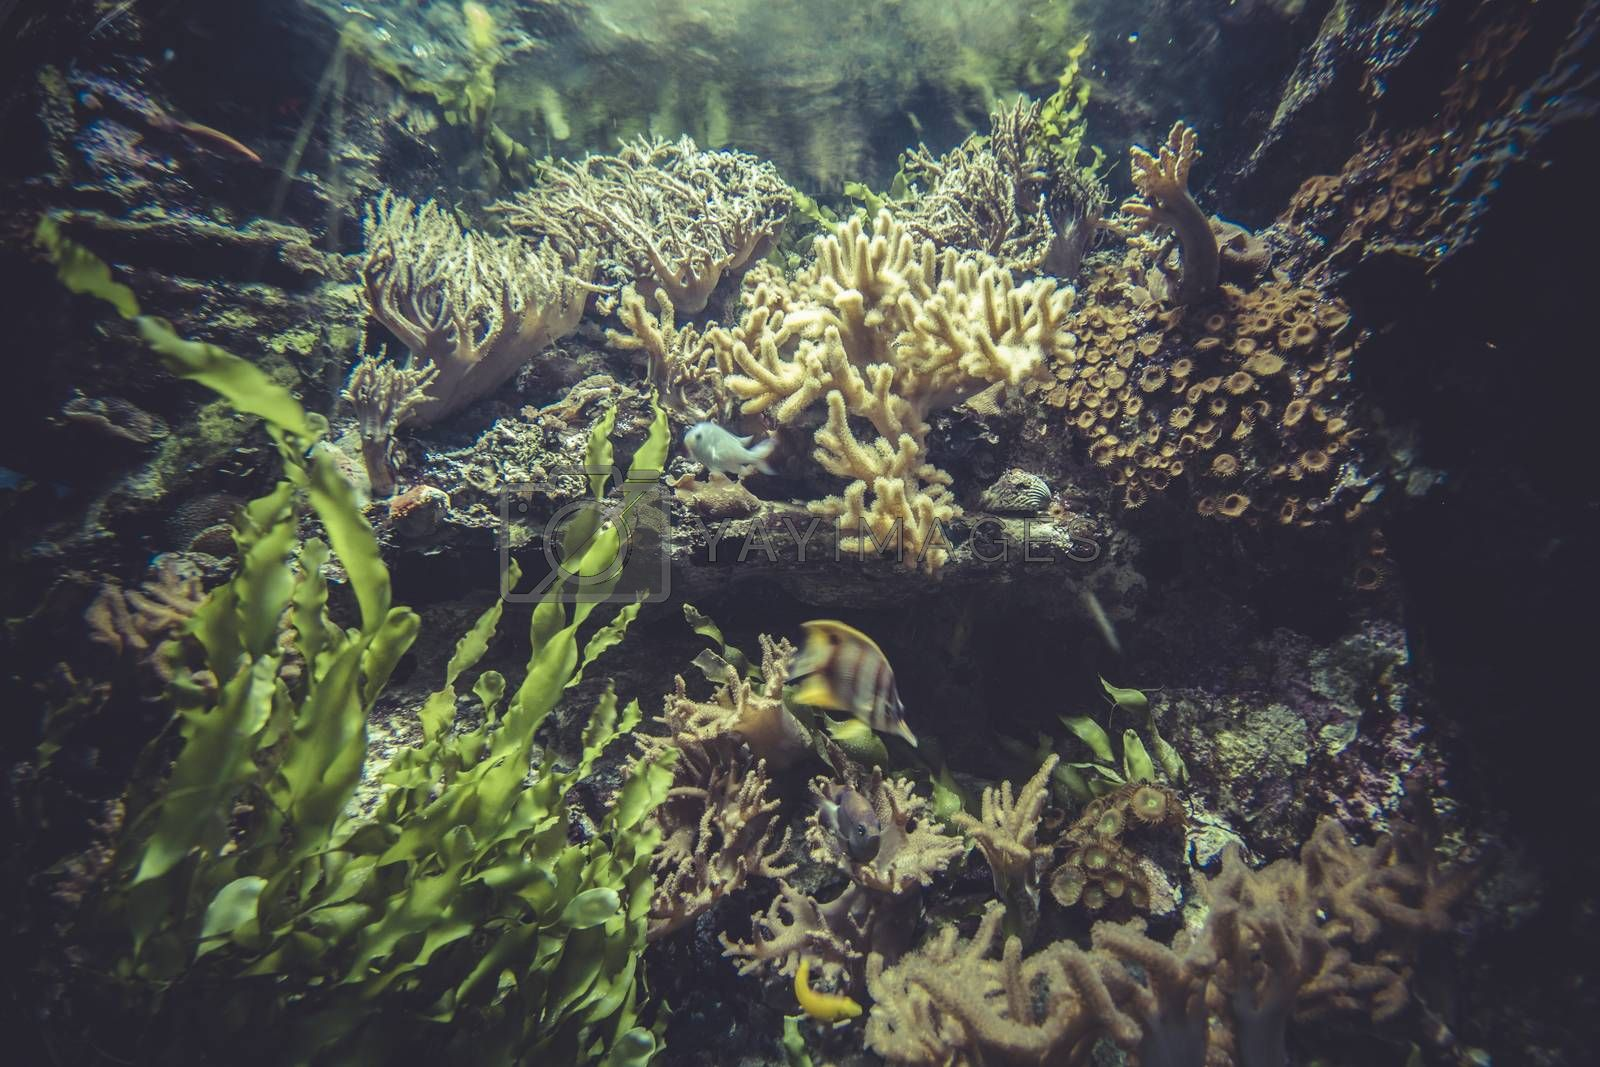 biodiversity, small coral reef ecosystem